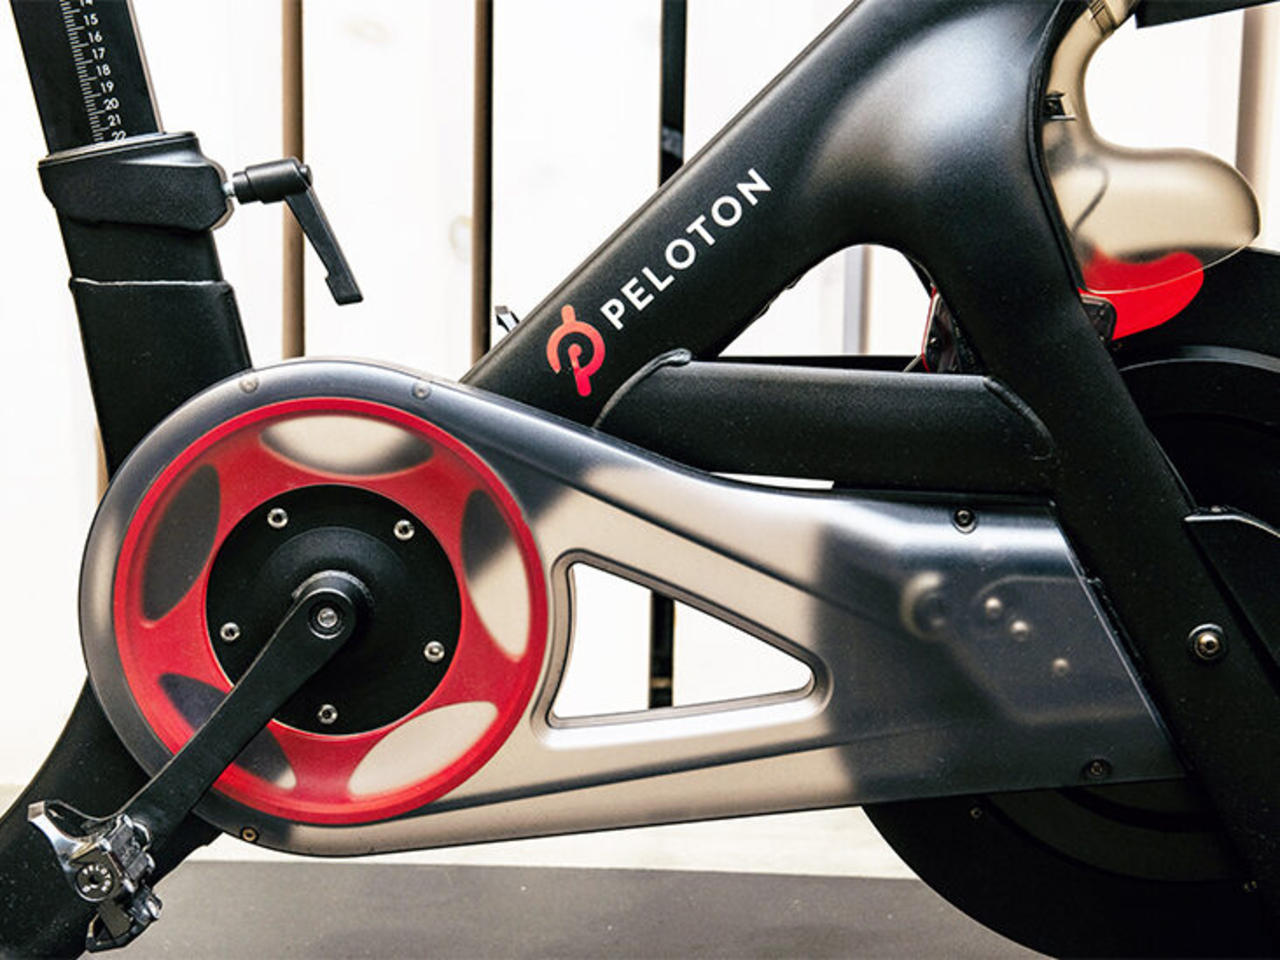 Peloton Debuts First Exercise Game for Connected Bike Owners